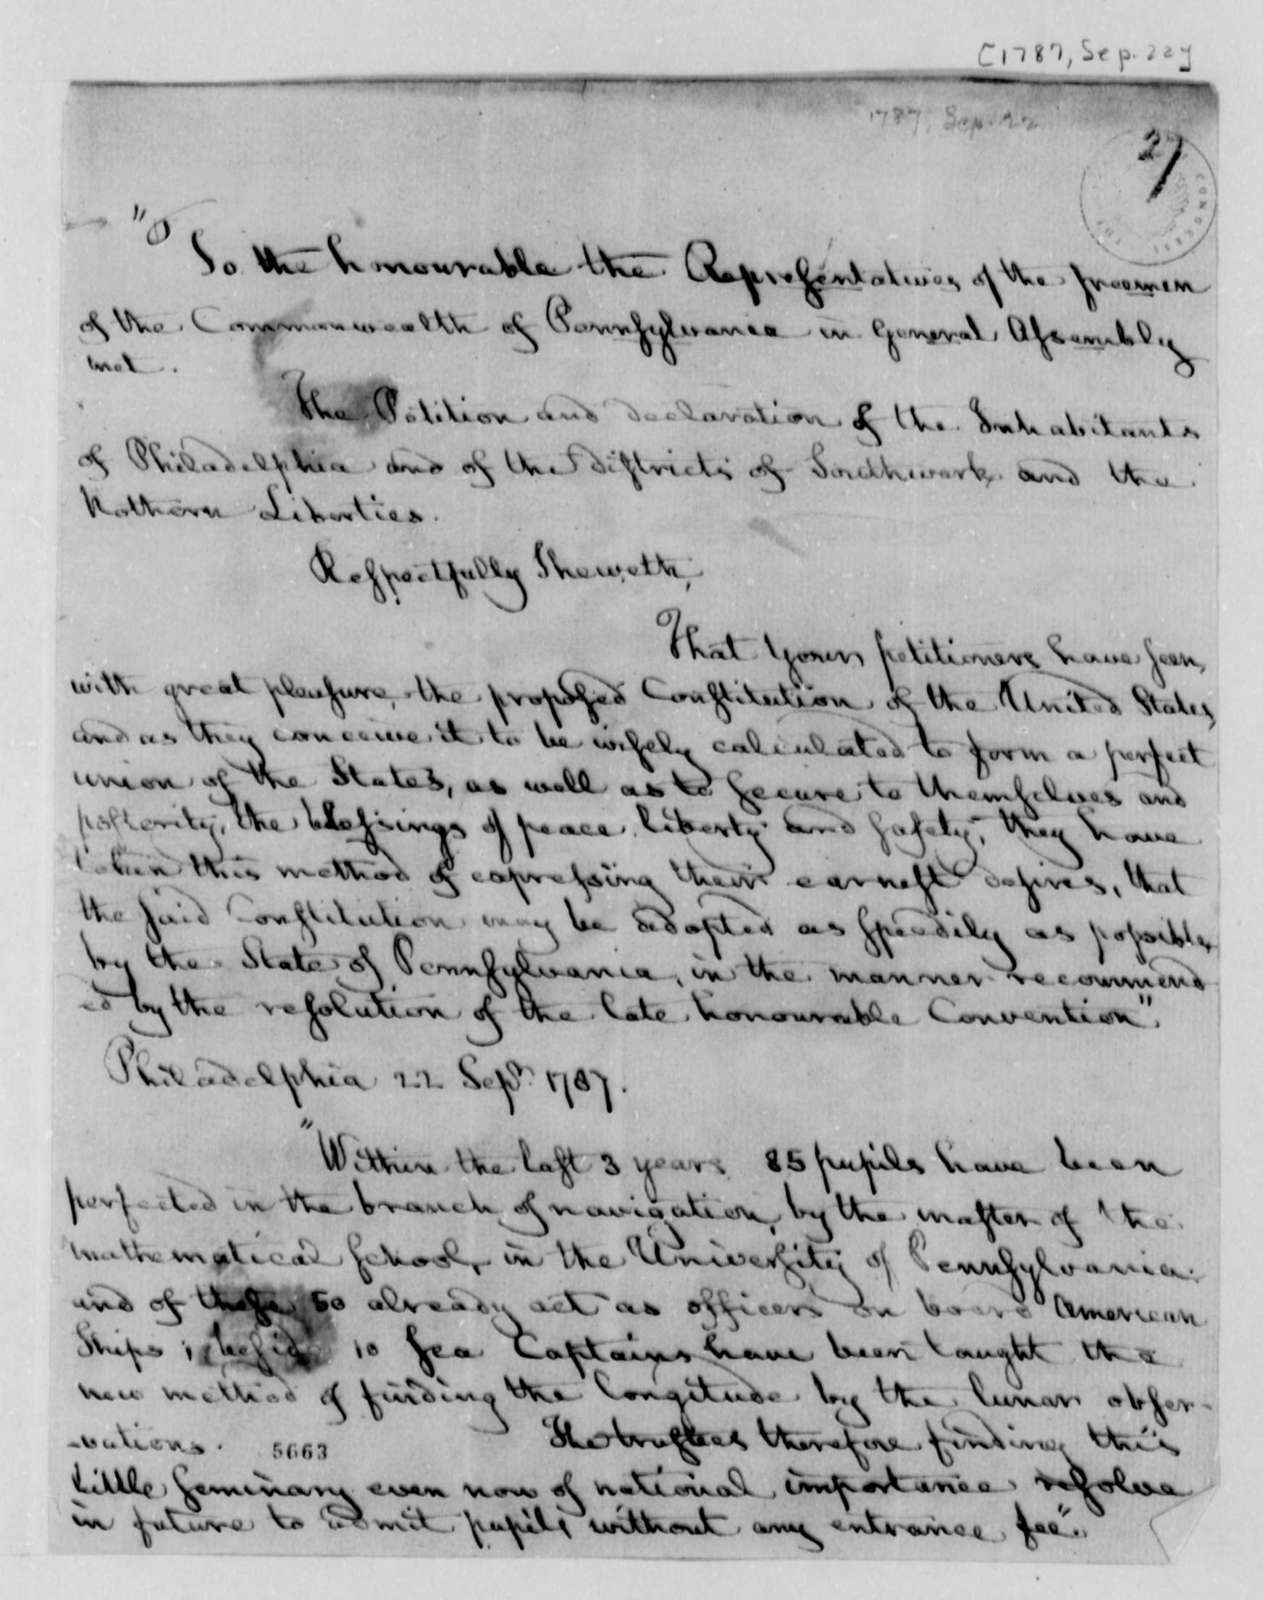 Philadelphia Area Citizens to Pennsylvania General Assembly, September 22, 1787, Petition Extracts on United States Constitution, etc.